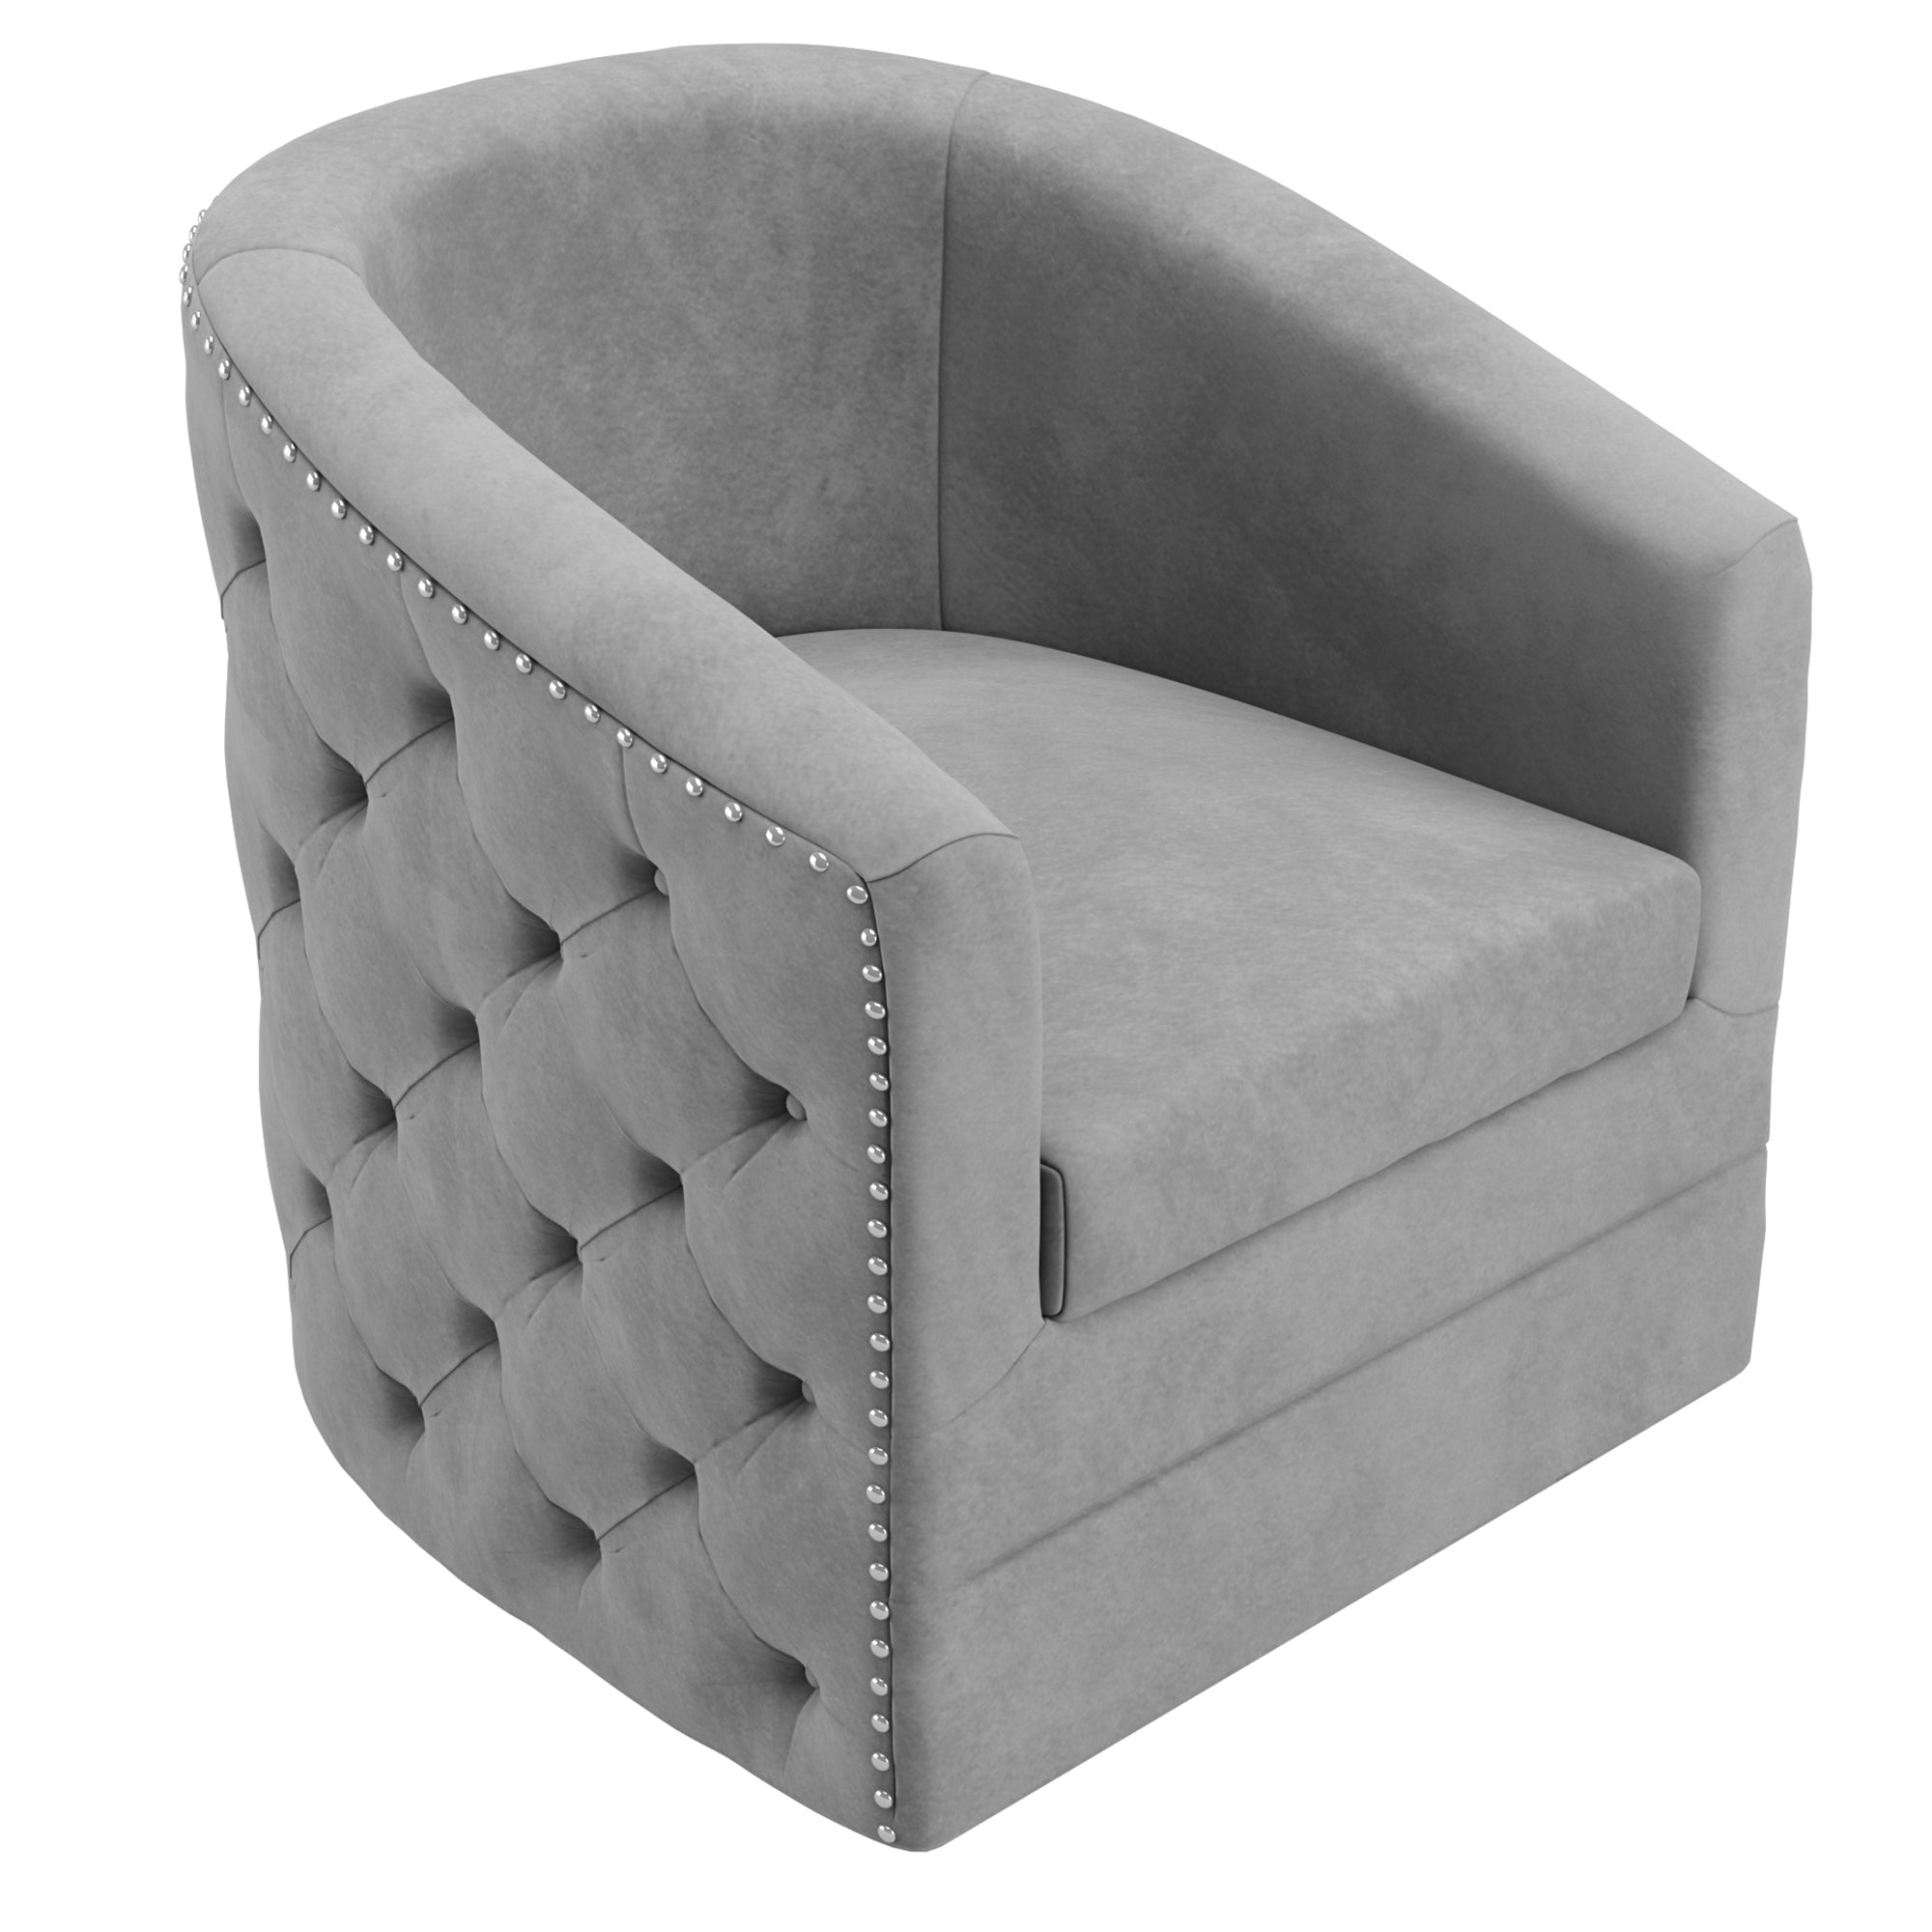 Flounder Accent Chair (Grey)